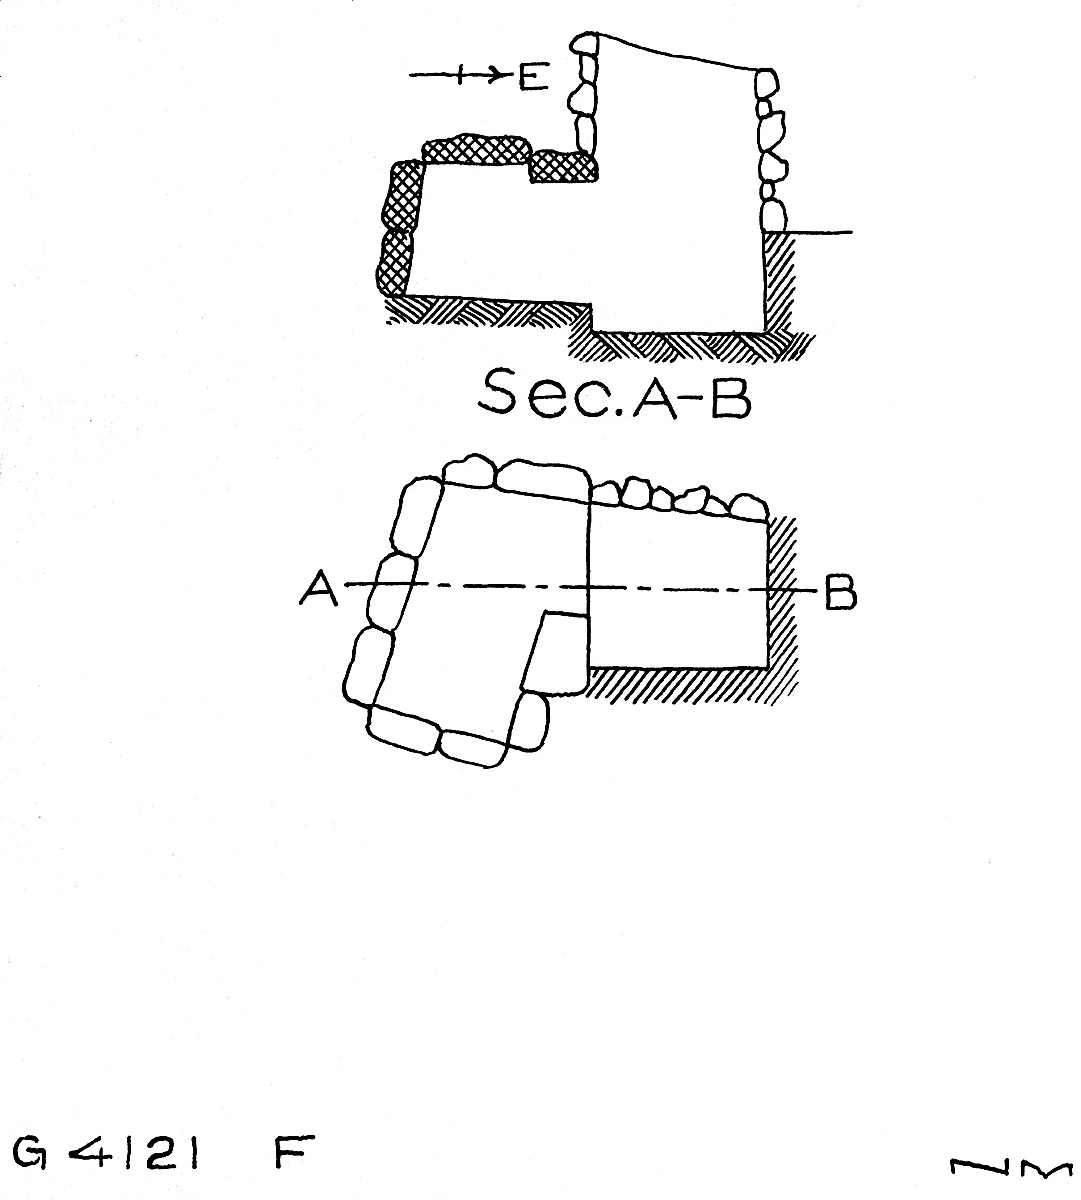 Maps and plans: G 4121, Shaft F